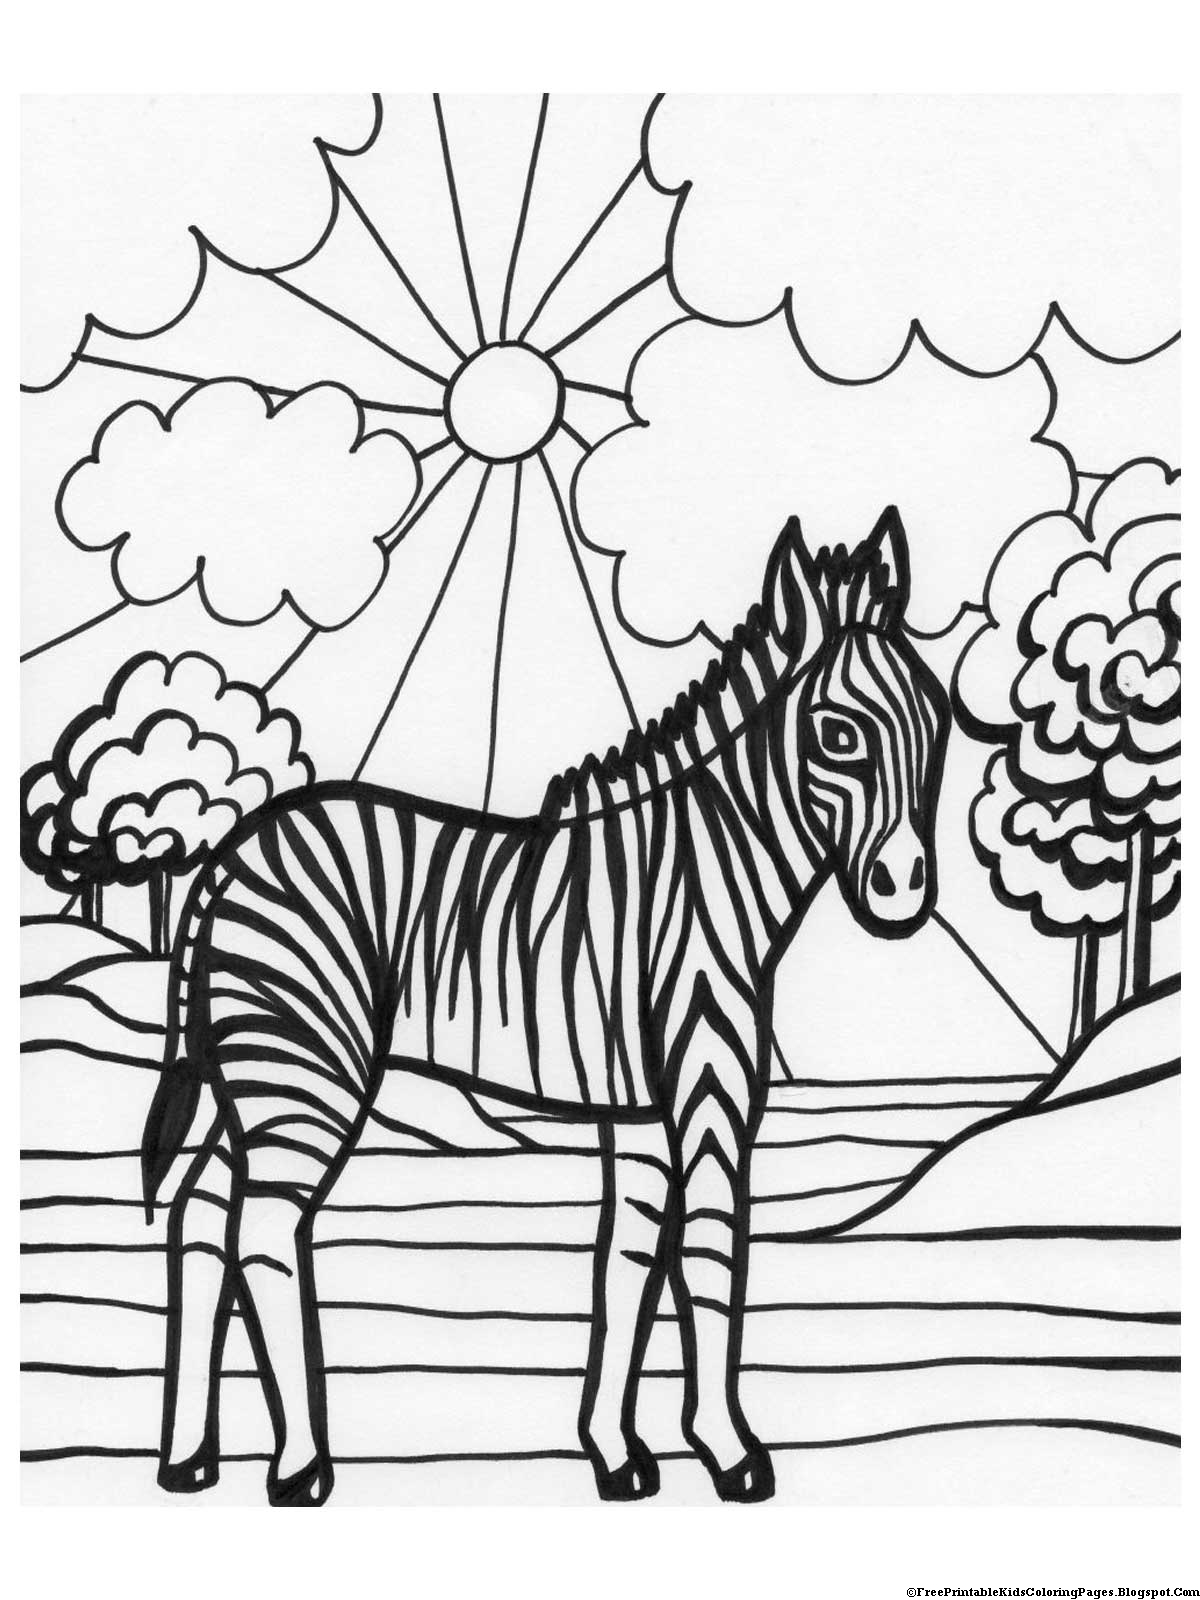 coloring printable pages for kids mouse to print mouse kids coloring pages printable kids pages coloring for